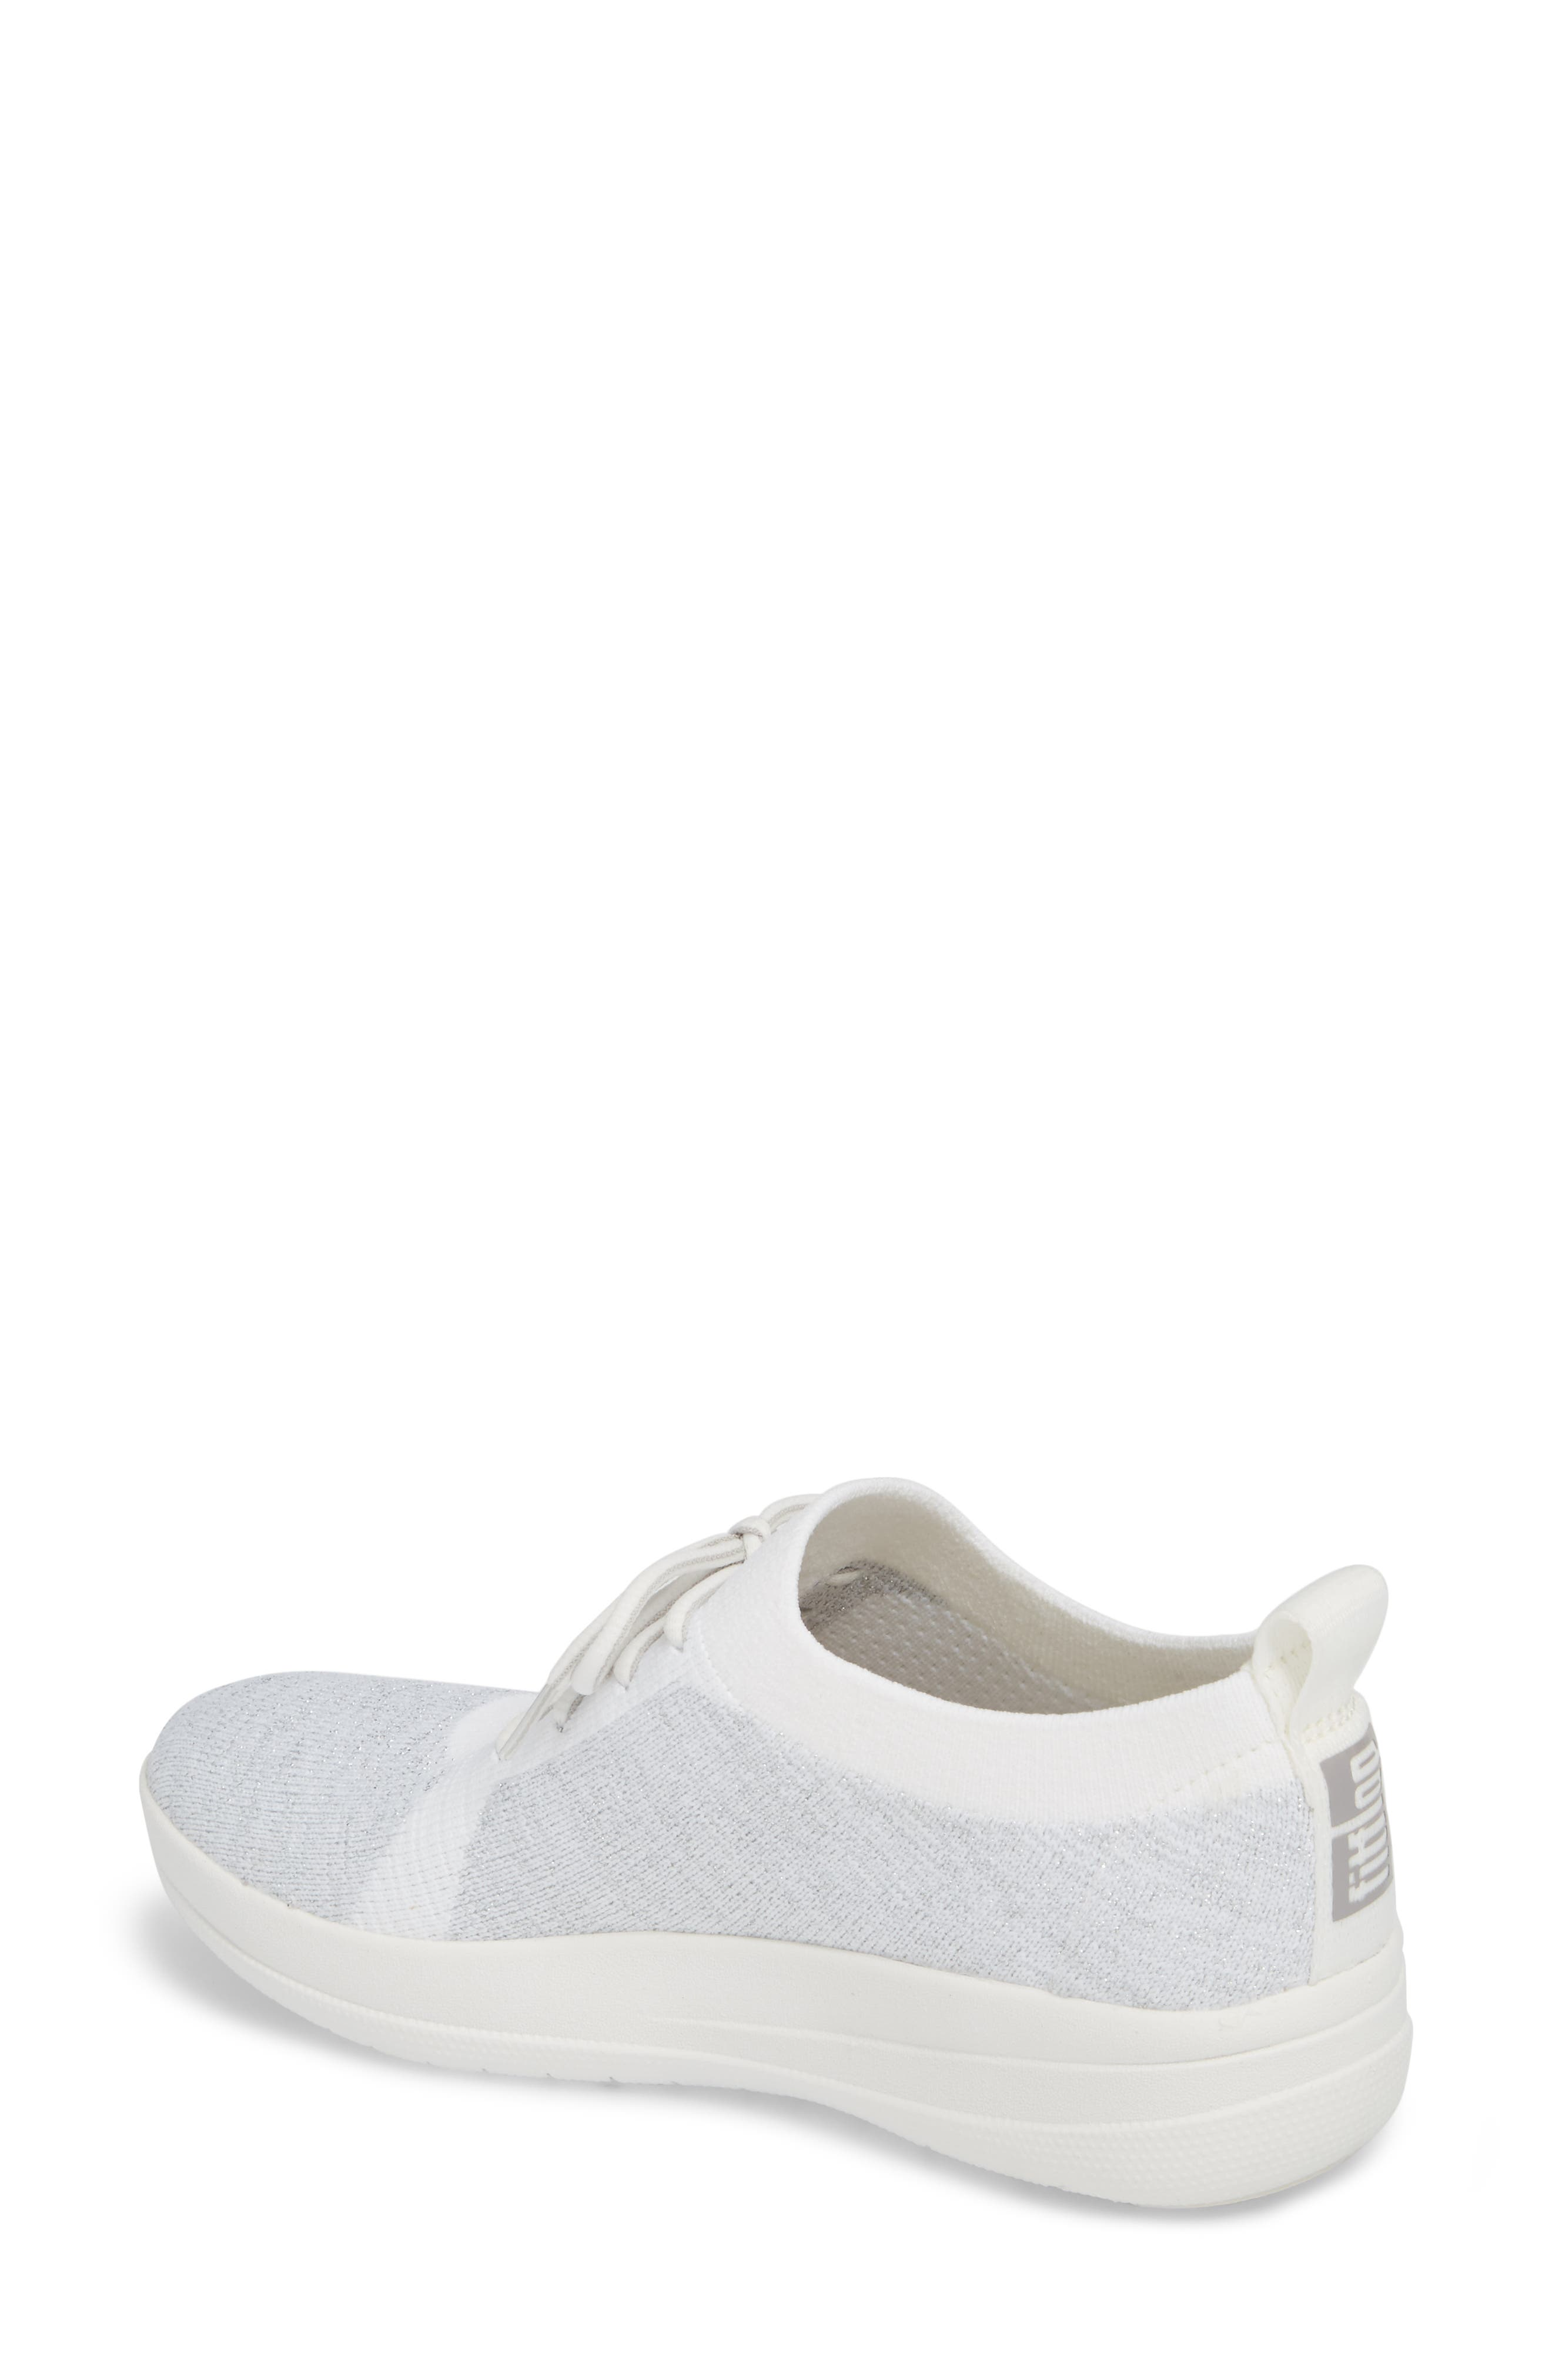 FITFLOP, Uberknit<sup>™</sup> F-Sporty Sneaker, Alternate thumbnail 2, color, METALLIC SILVER/ URBAN WHITE